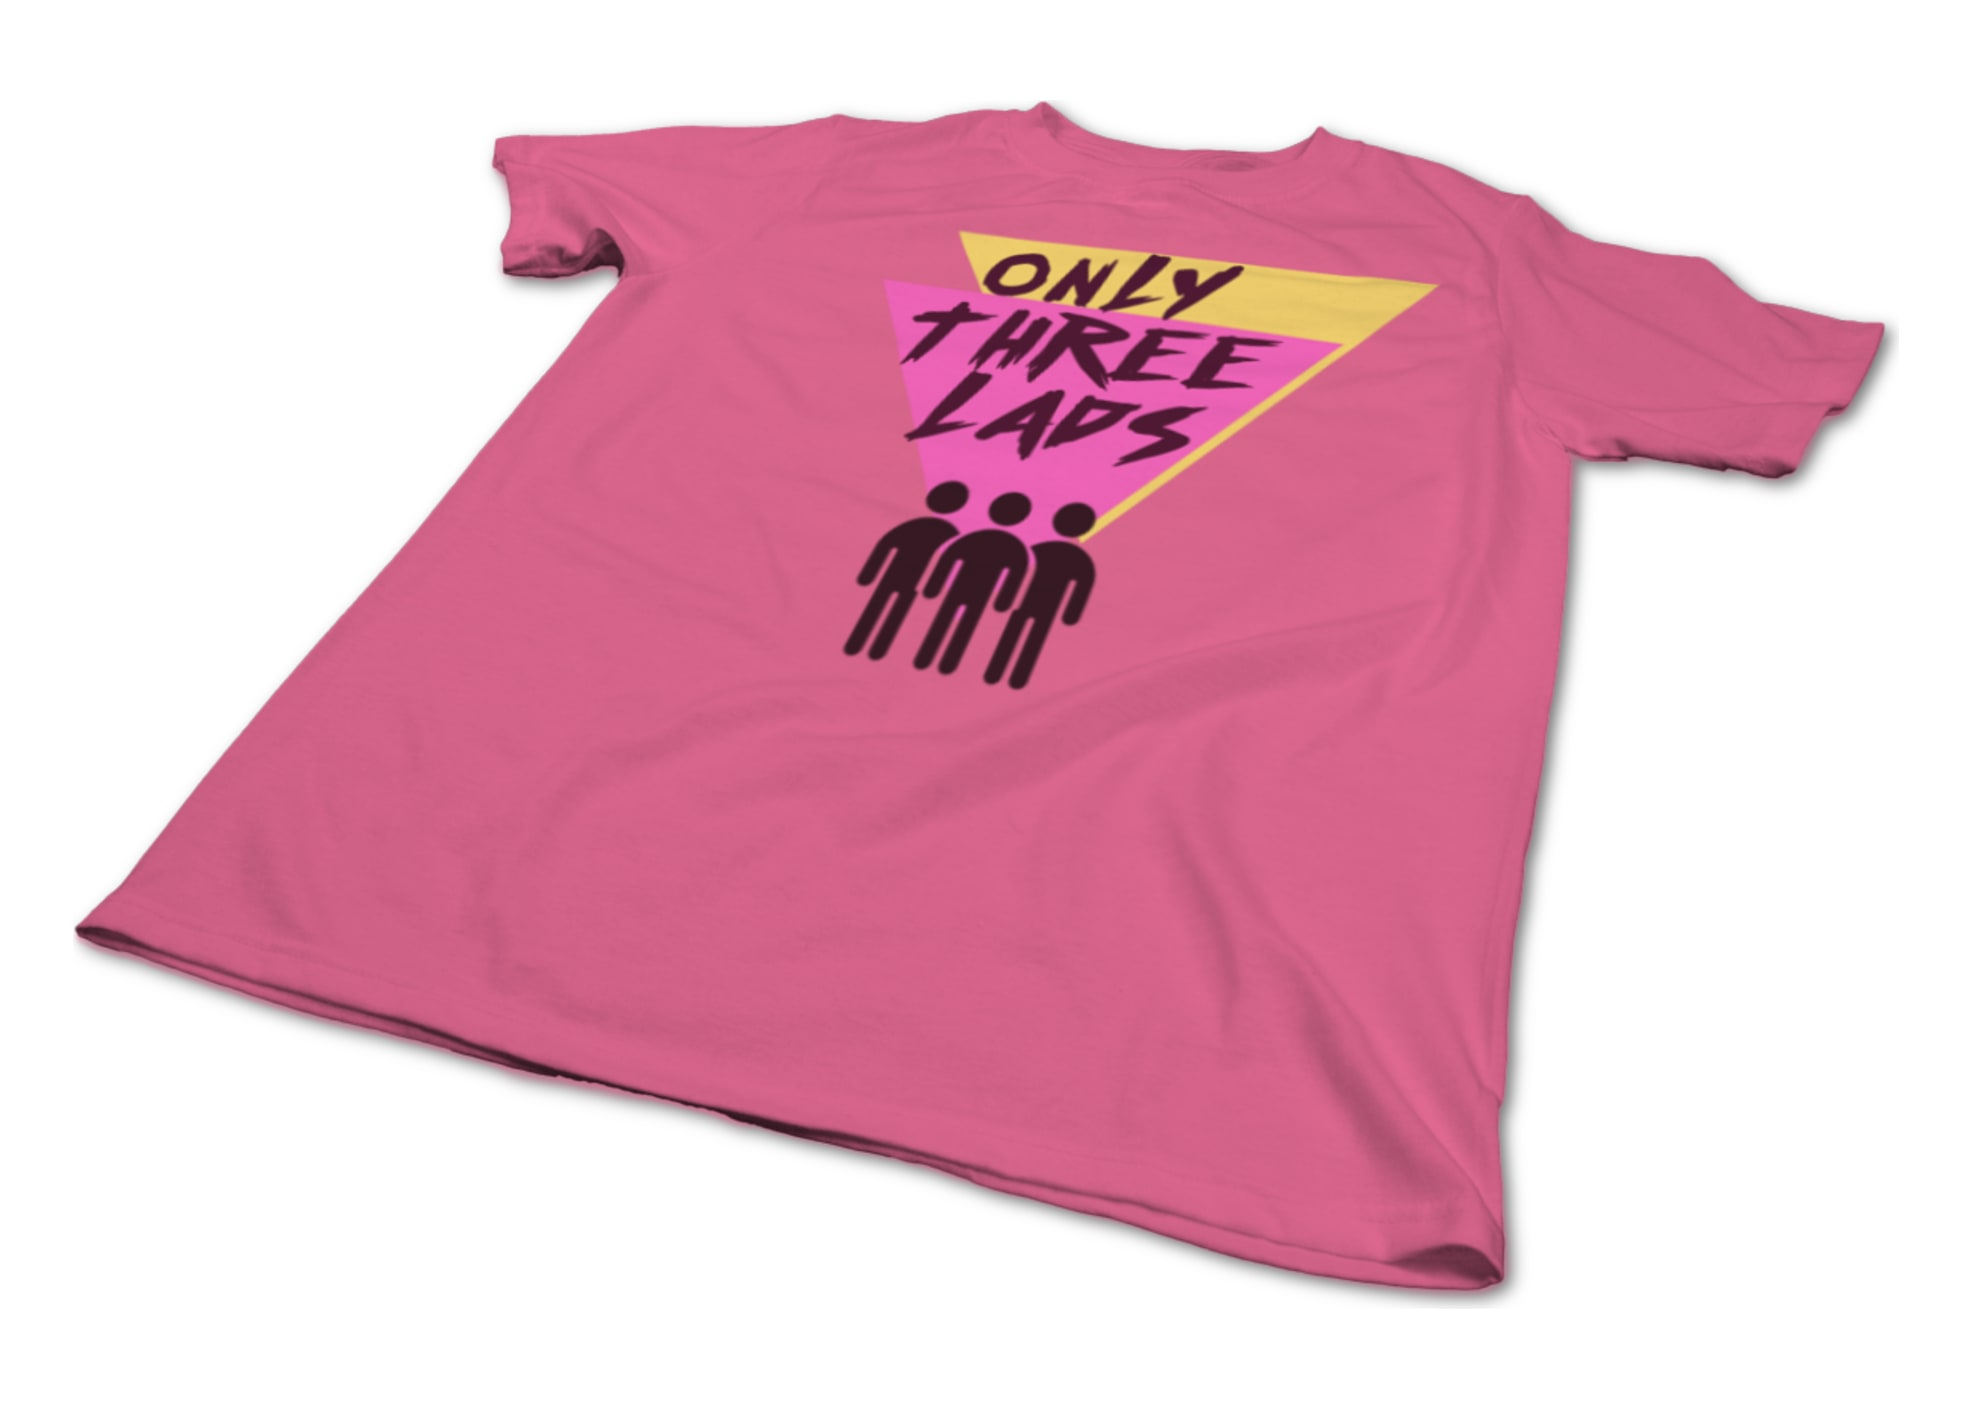 Only three lads o3l   triangles  pink  1579510203